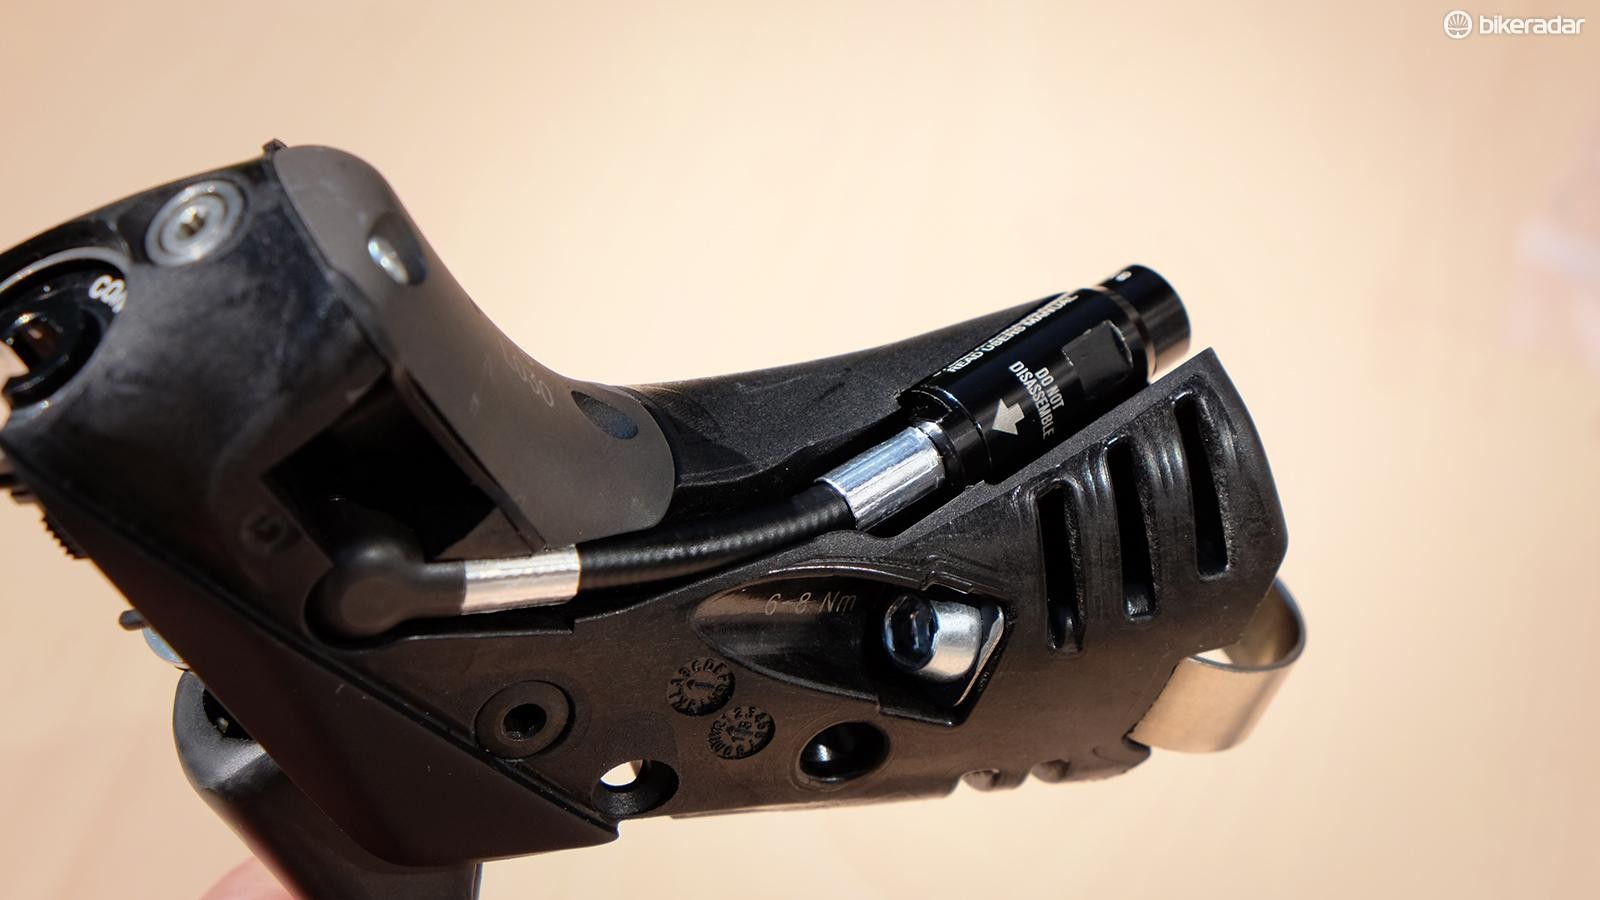 The integrated Stealth-a-Majig connector keeps air out of the master cylinder when cutting hydraulic lines